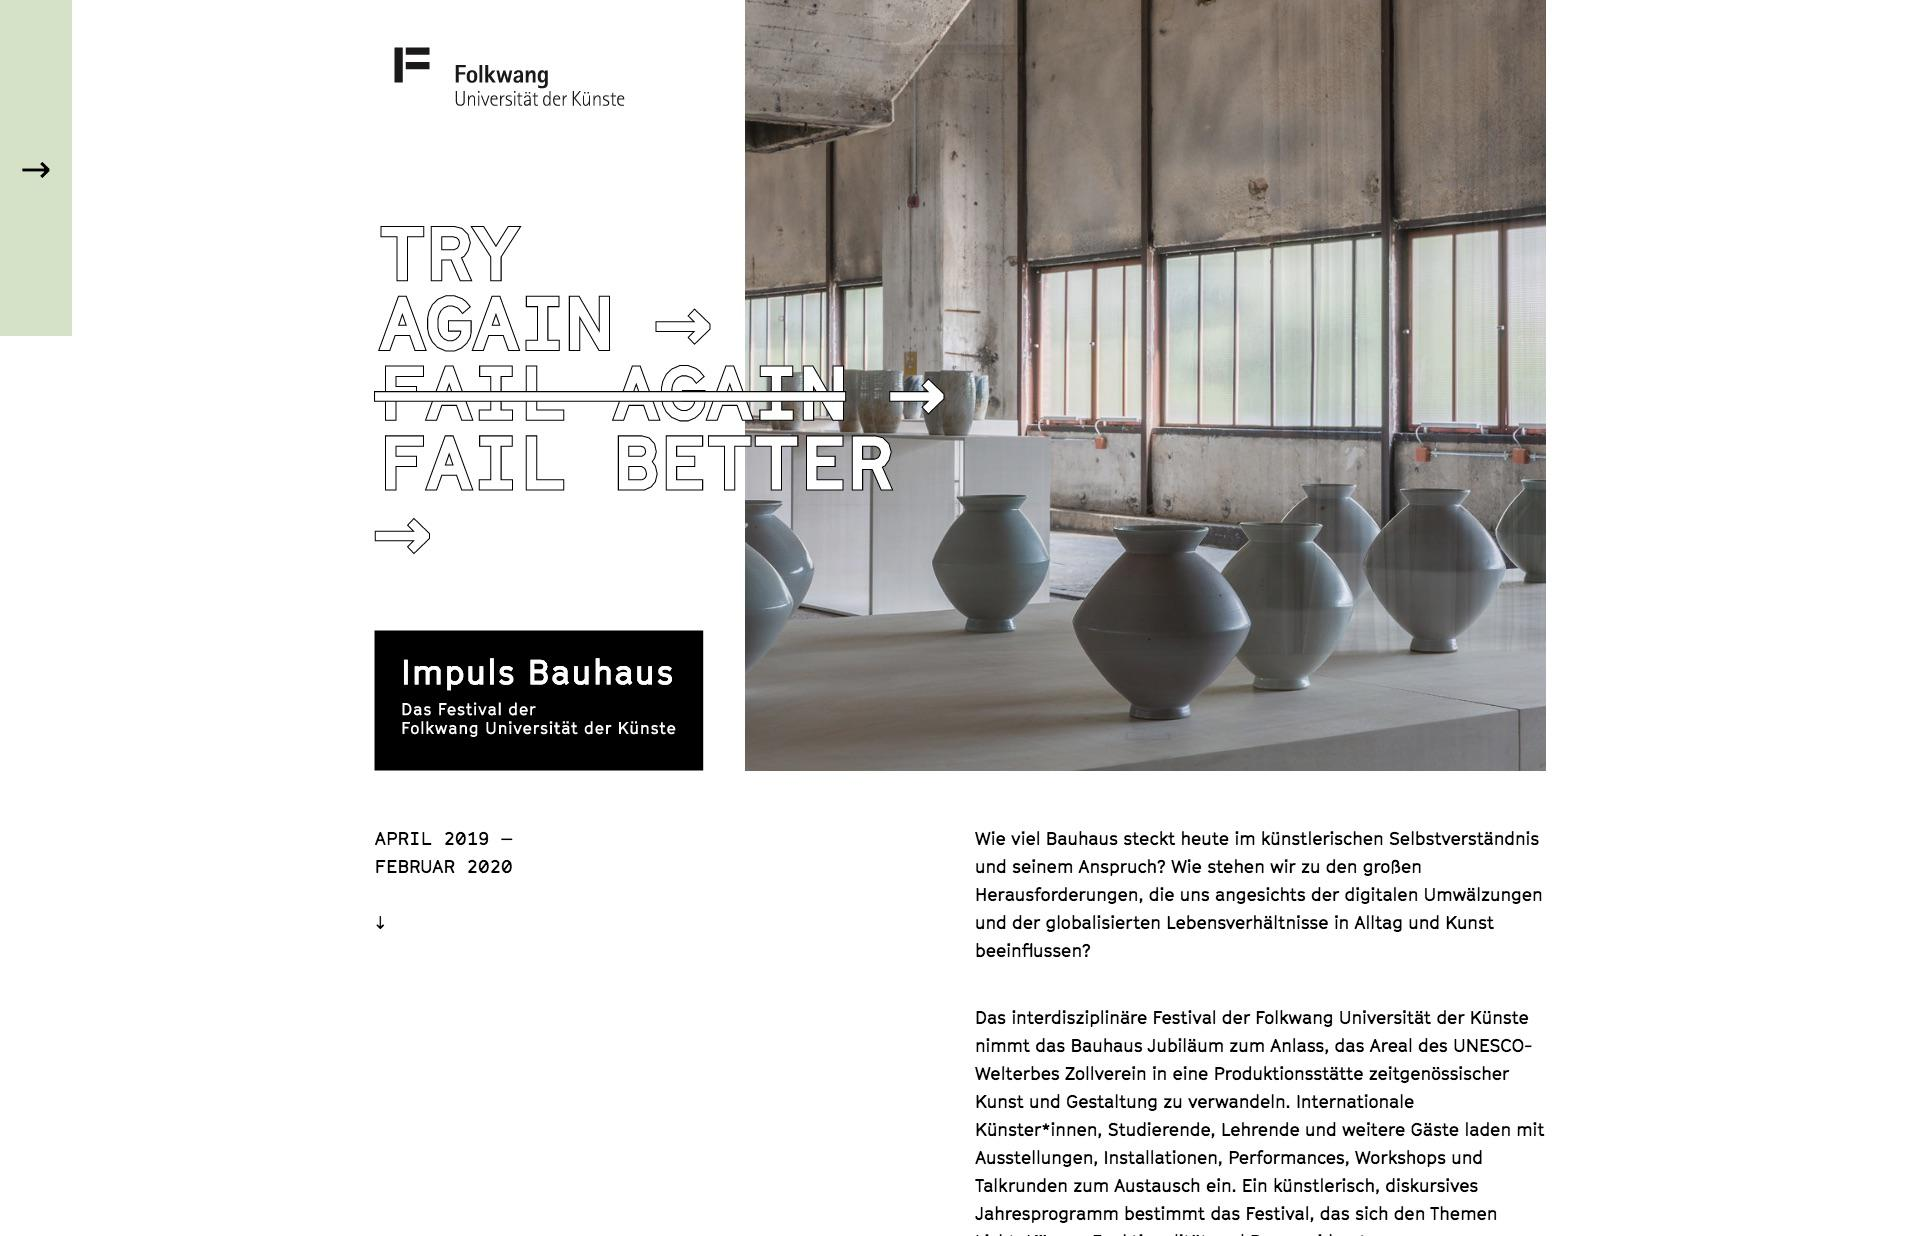 Screenshot of the website Impuls Bauhaus, featured on The Gallery, a curated collection of minimal websites